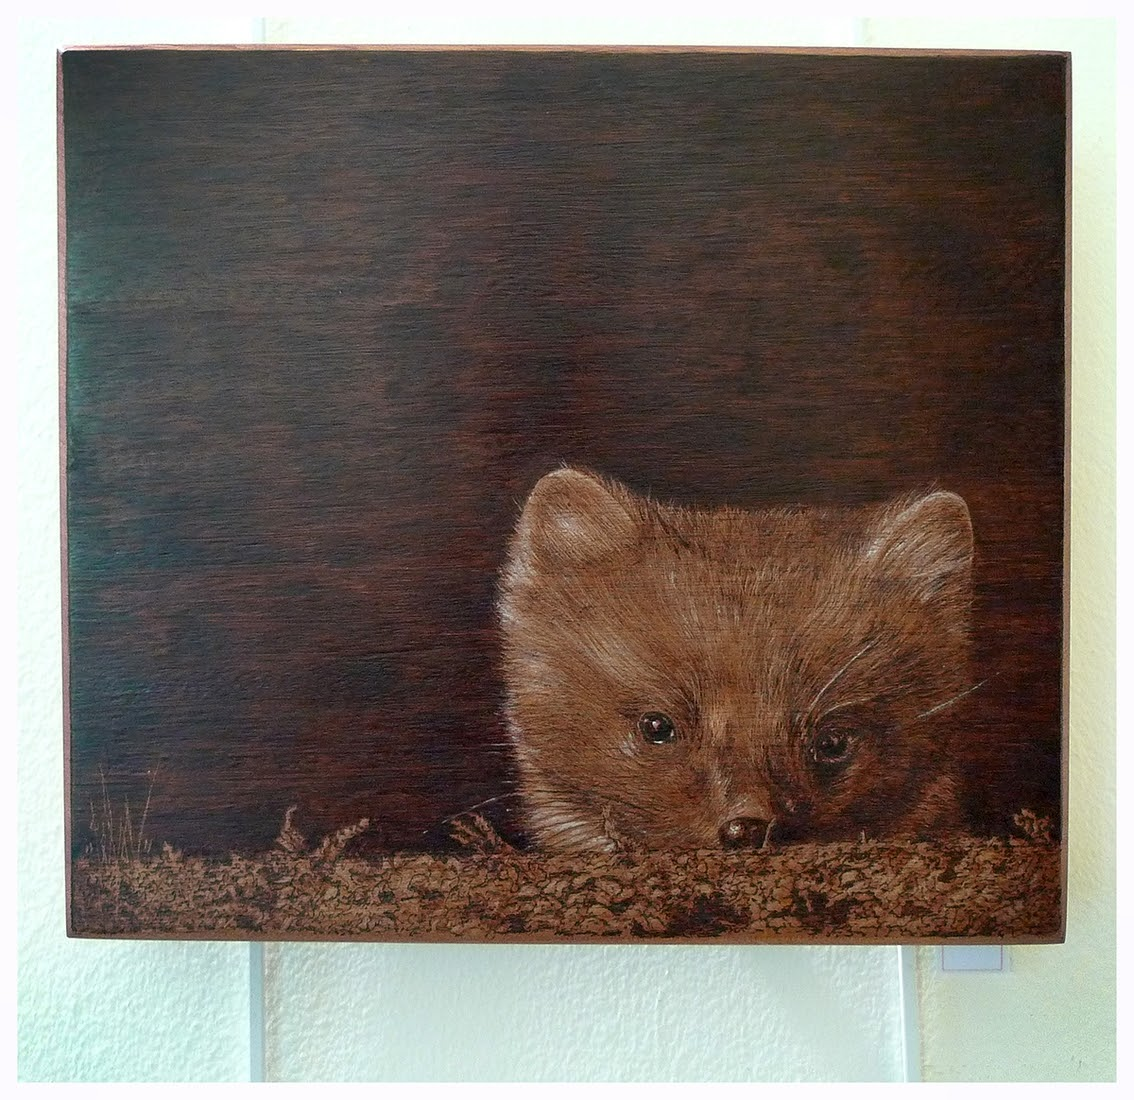 11-Pine-Marten-Eben-Cavanagh-Rautenbach-LeRoc-Animal-Drawings-using-Pyrography-www-designstack-co